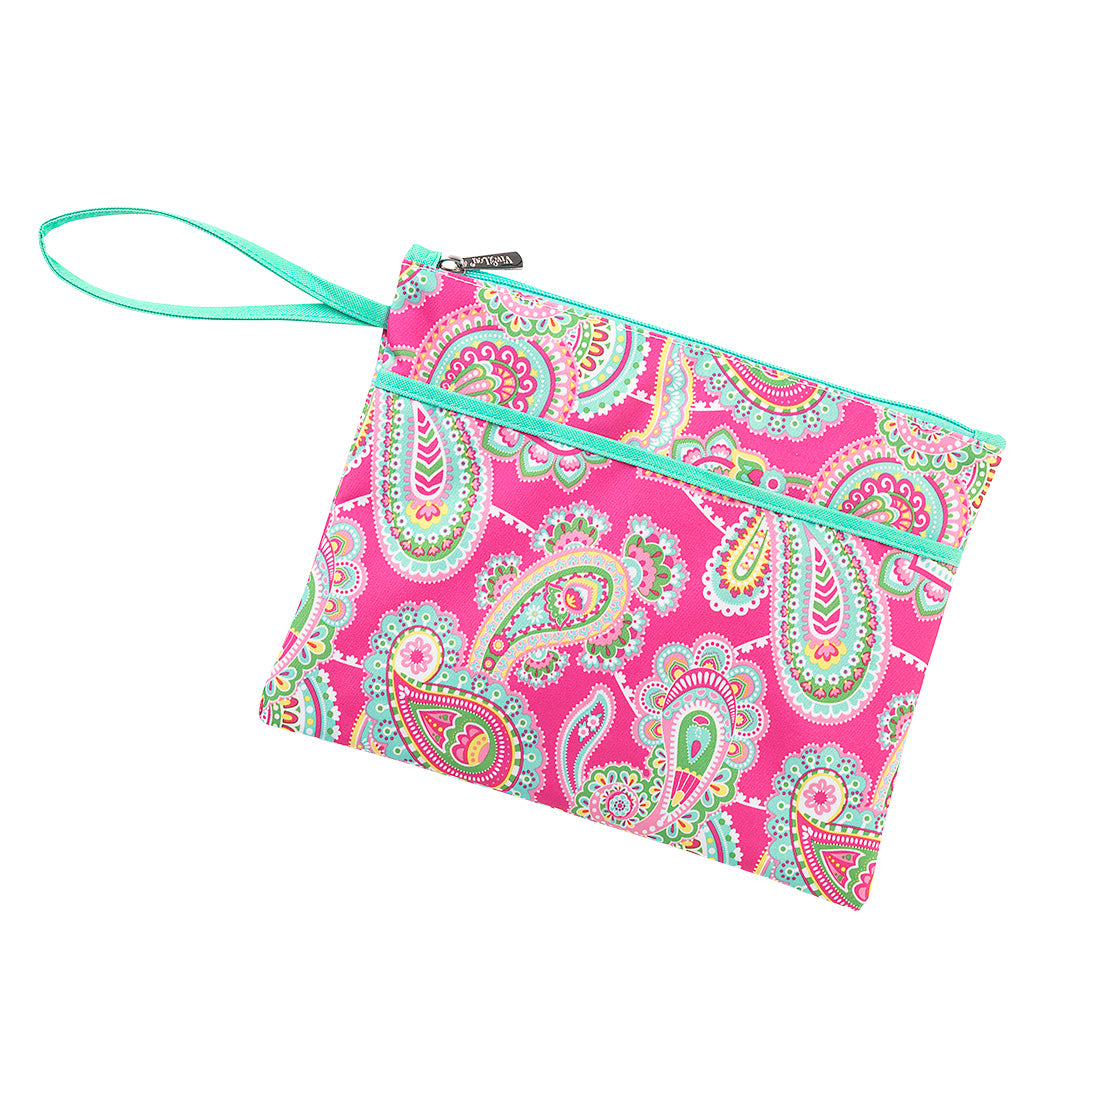 viv & lou, paisley wristlet, aqua, pink, orange, yellow, preppy, too qute boutique, www.tooquteboutique.com